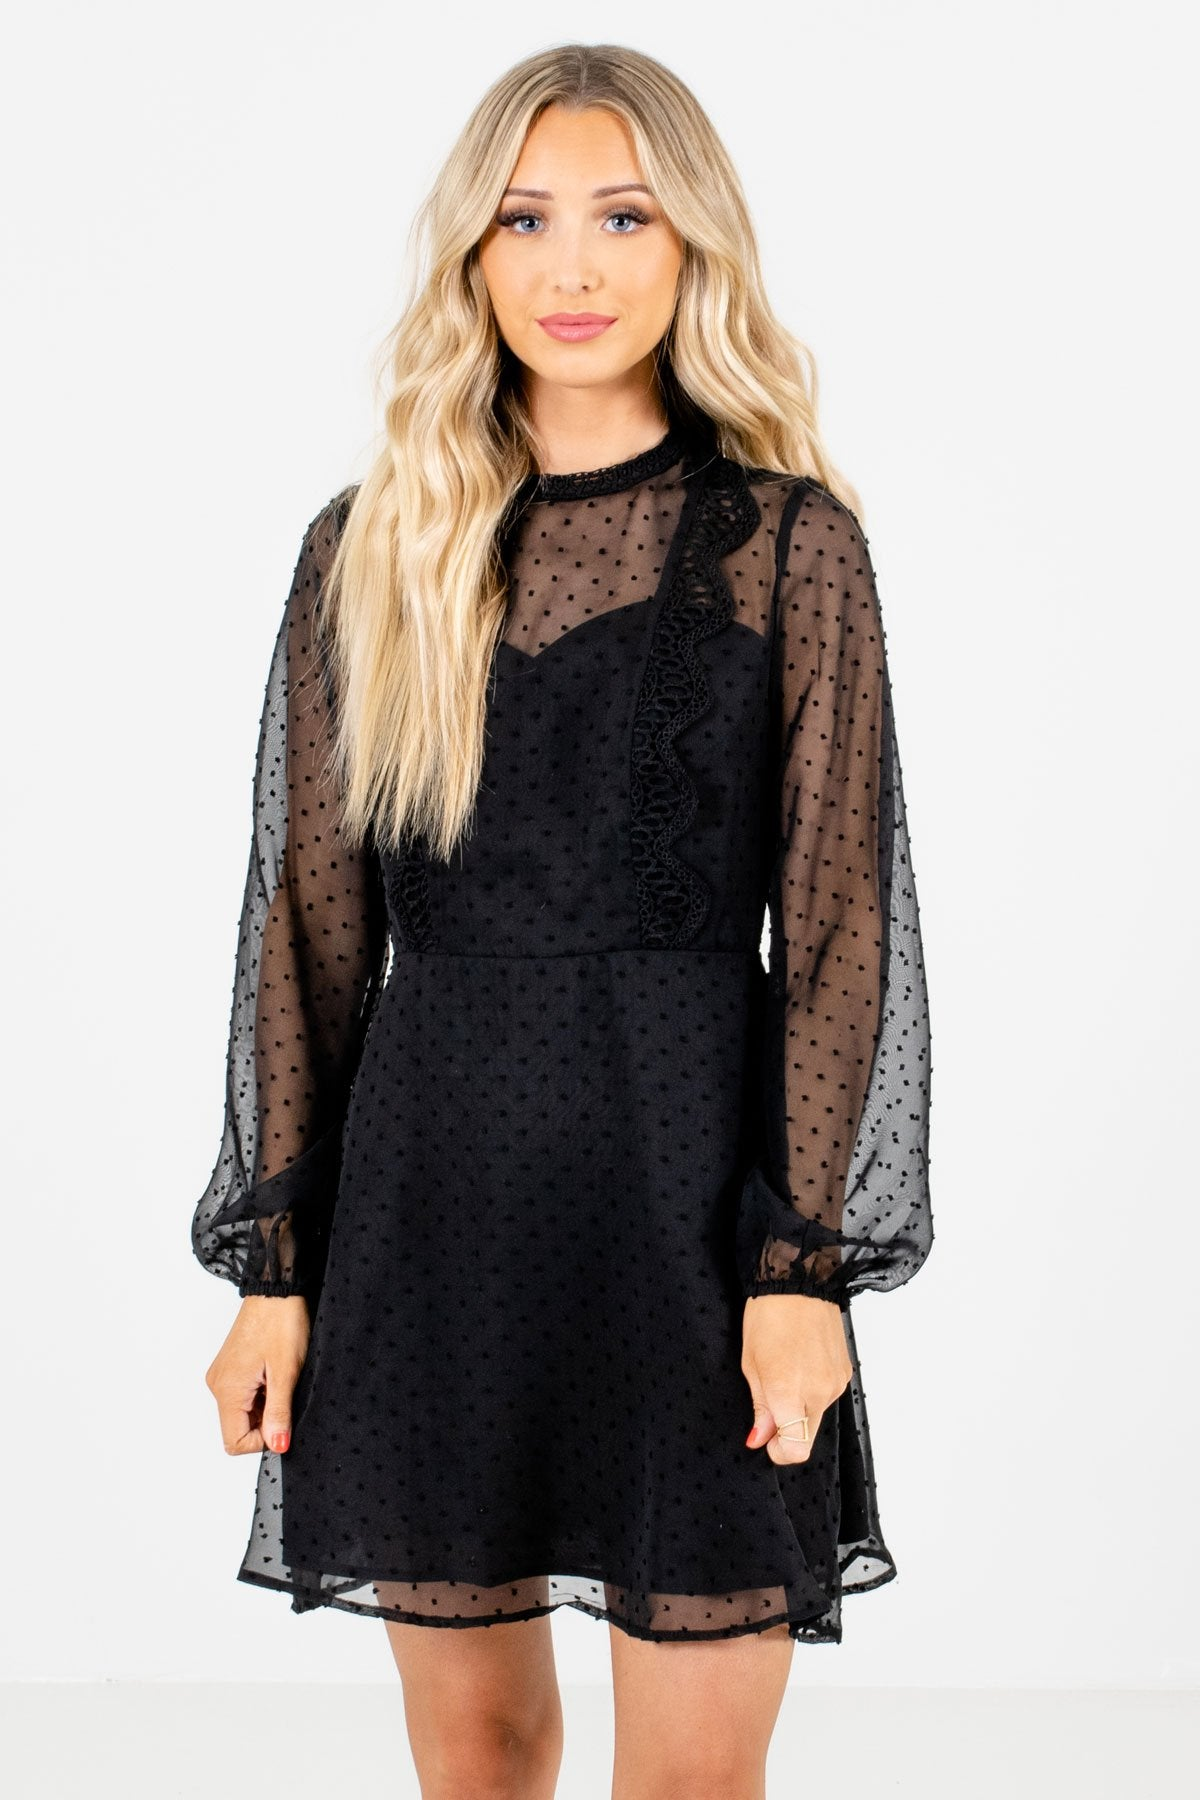 Black Polka Dot Textured Material Boutique Mini Dresses for Women